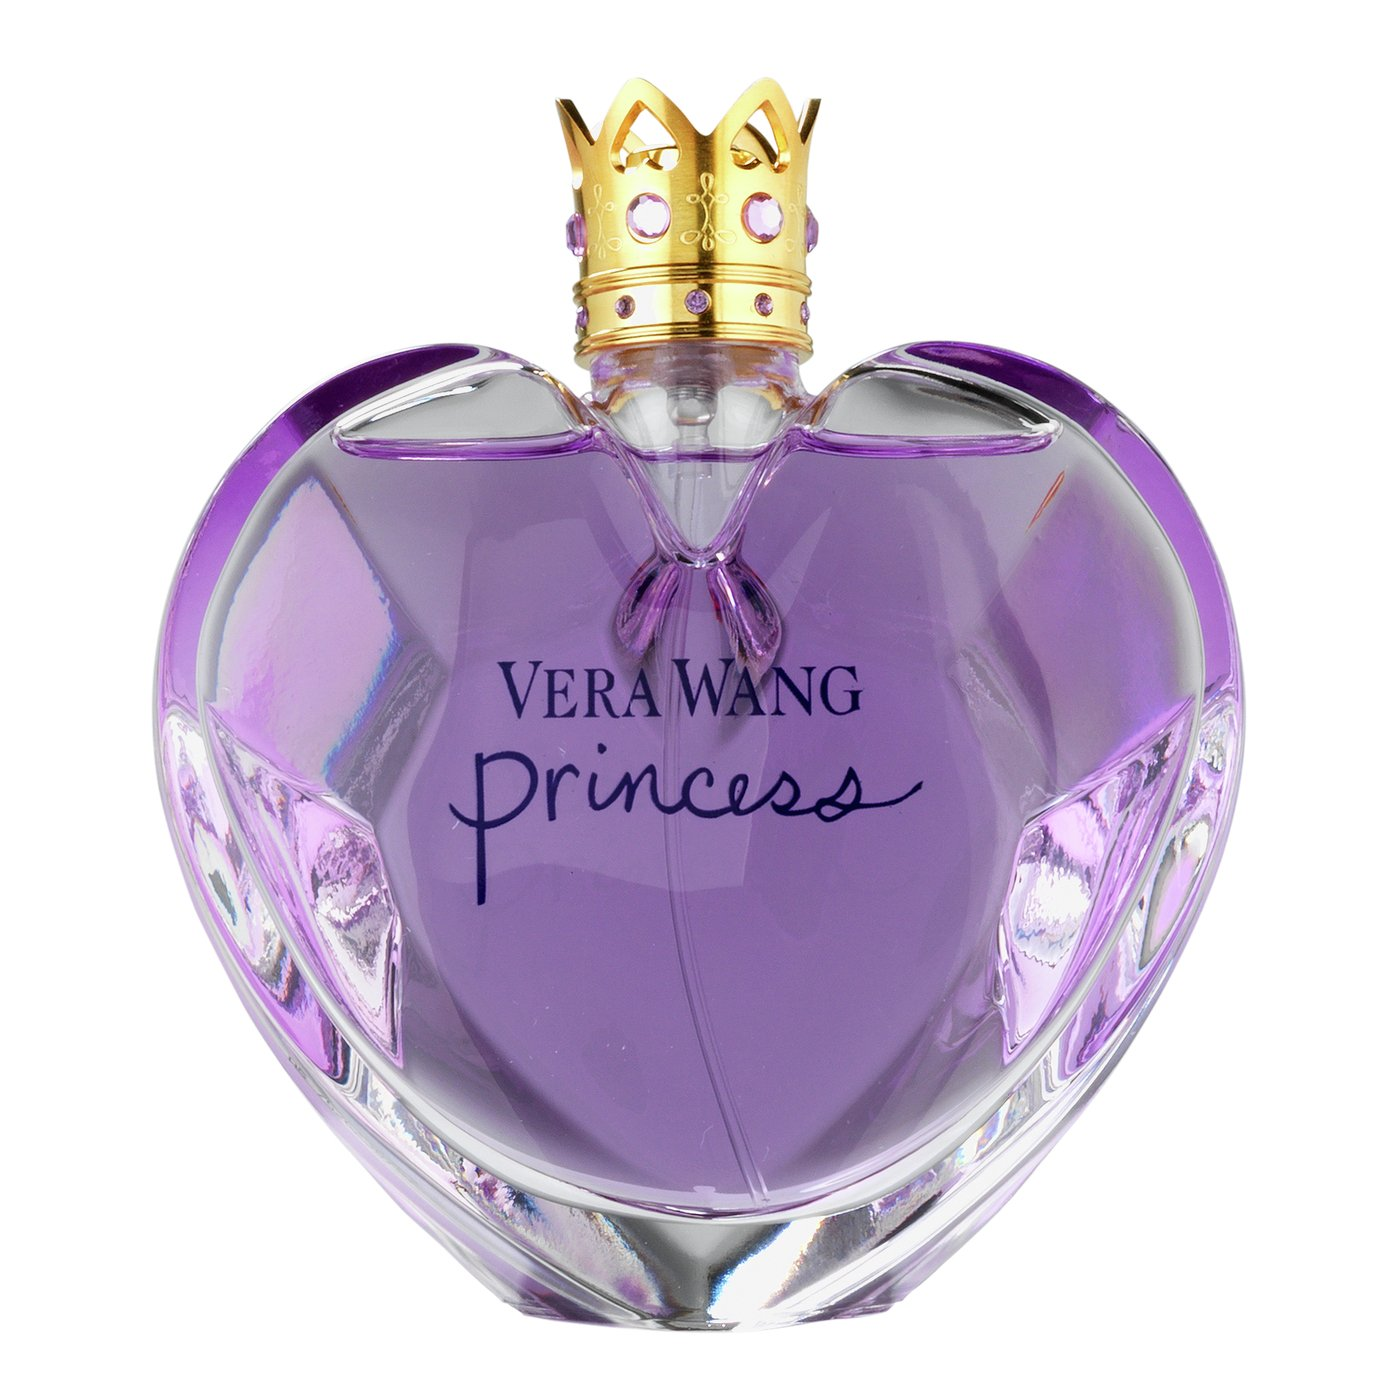 Vera Wang - Princess for Women - 100ml Eau de Toilette. from Vera Wang